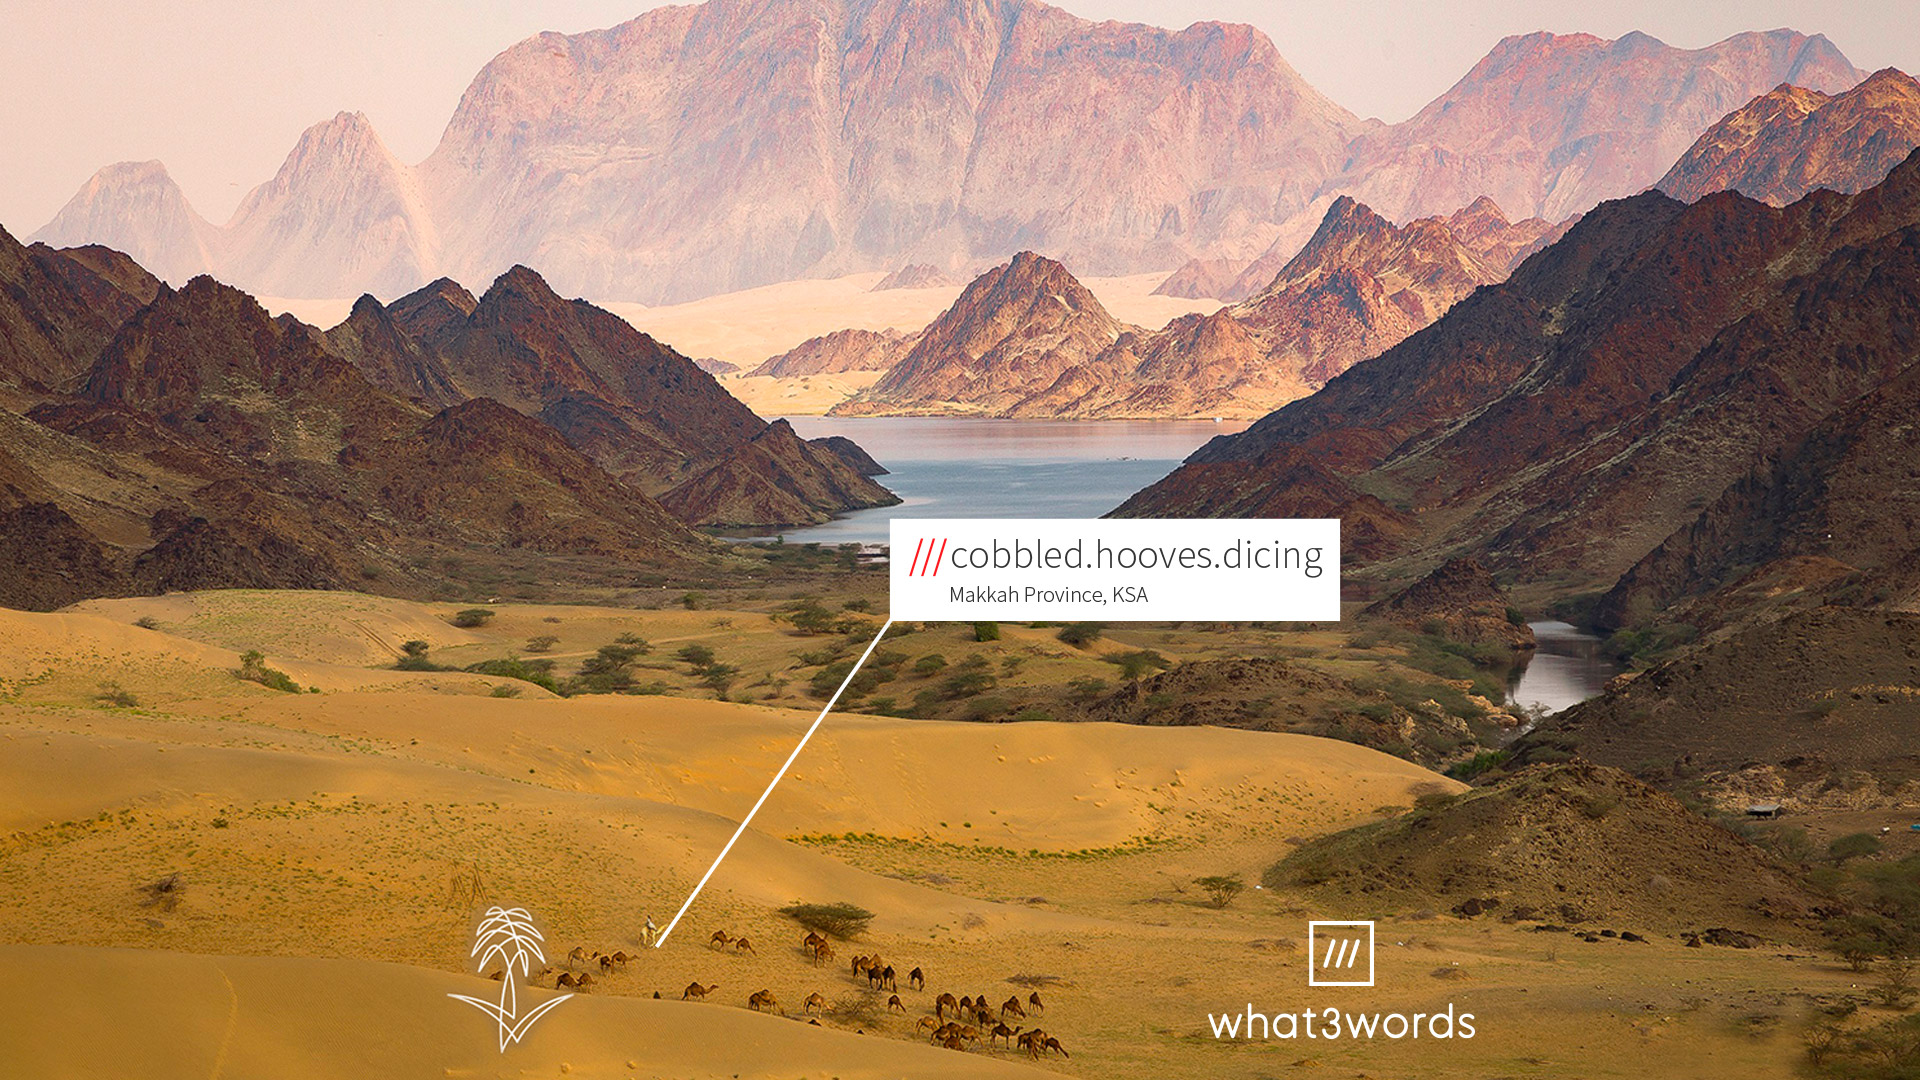 camels in desert with red mountains in background at 3 word address cobbled.hooves.dicing